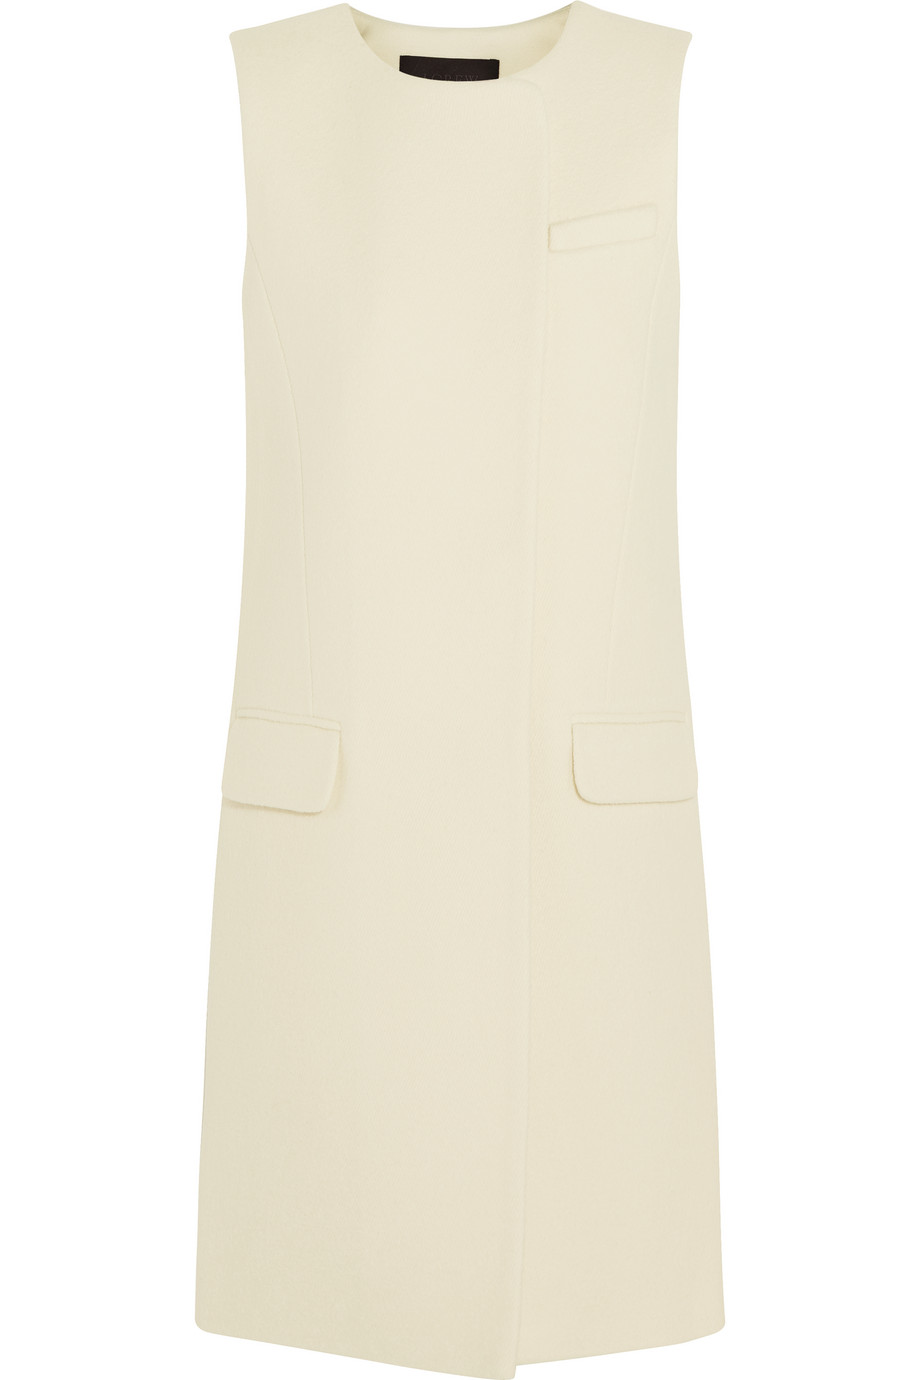 J.Crew Collection Cora Boiled Wool Gilet, Ivory, Women's, Size: 6